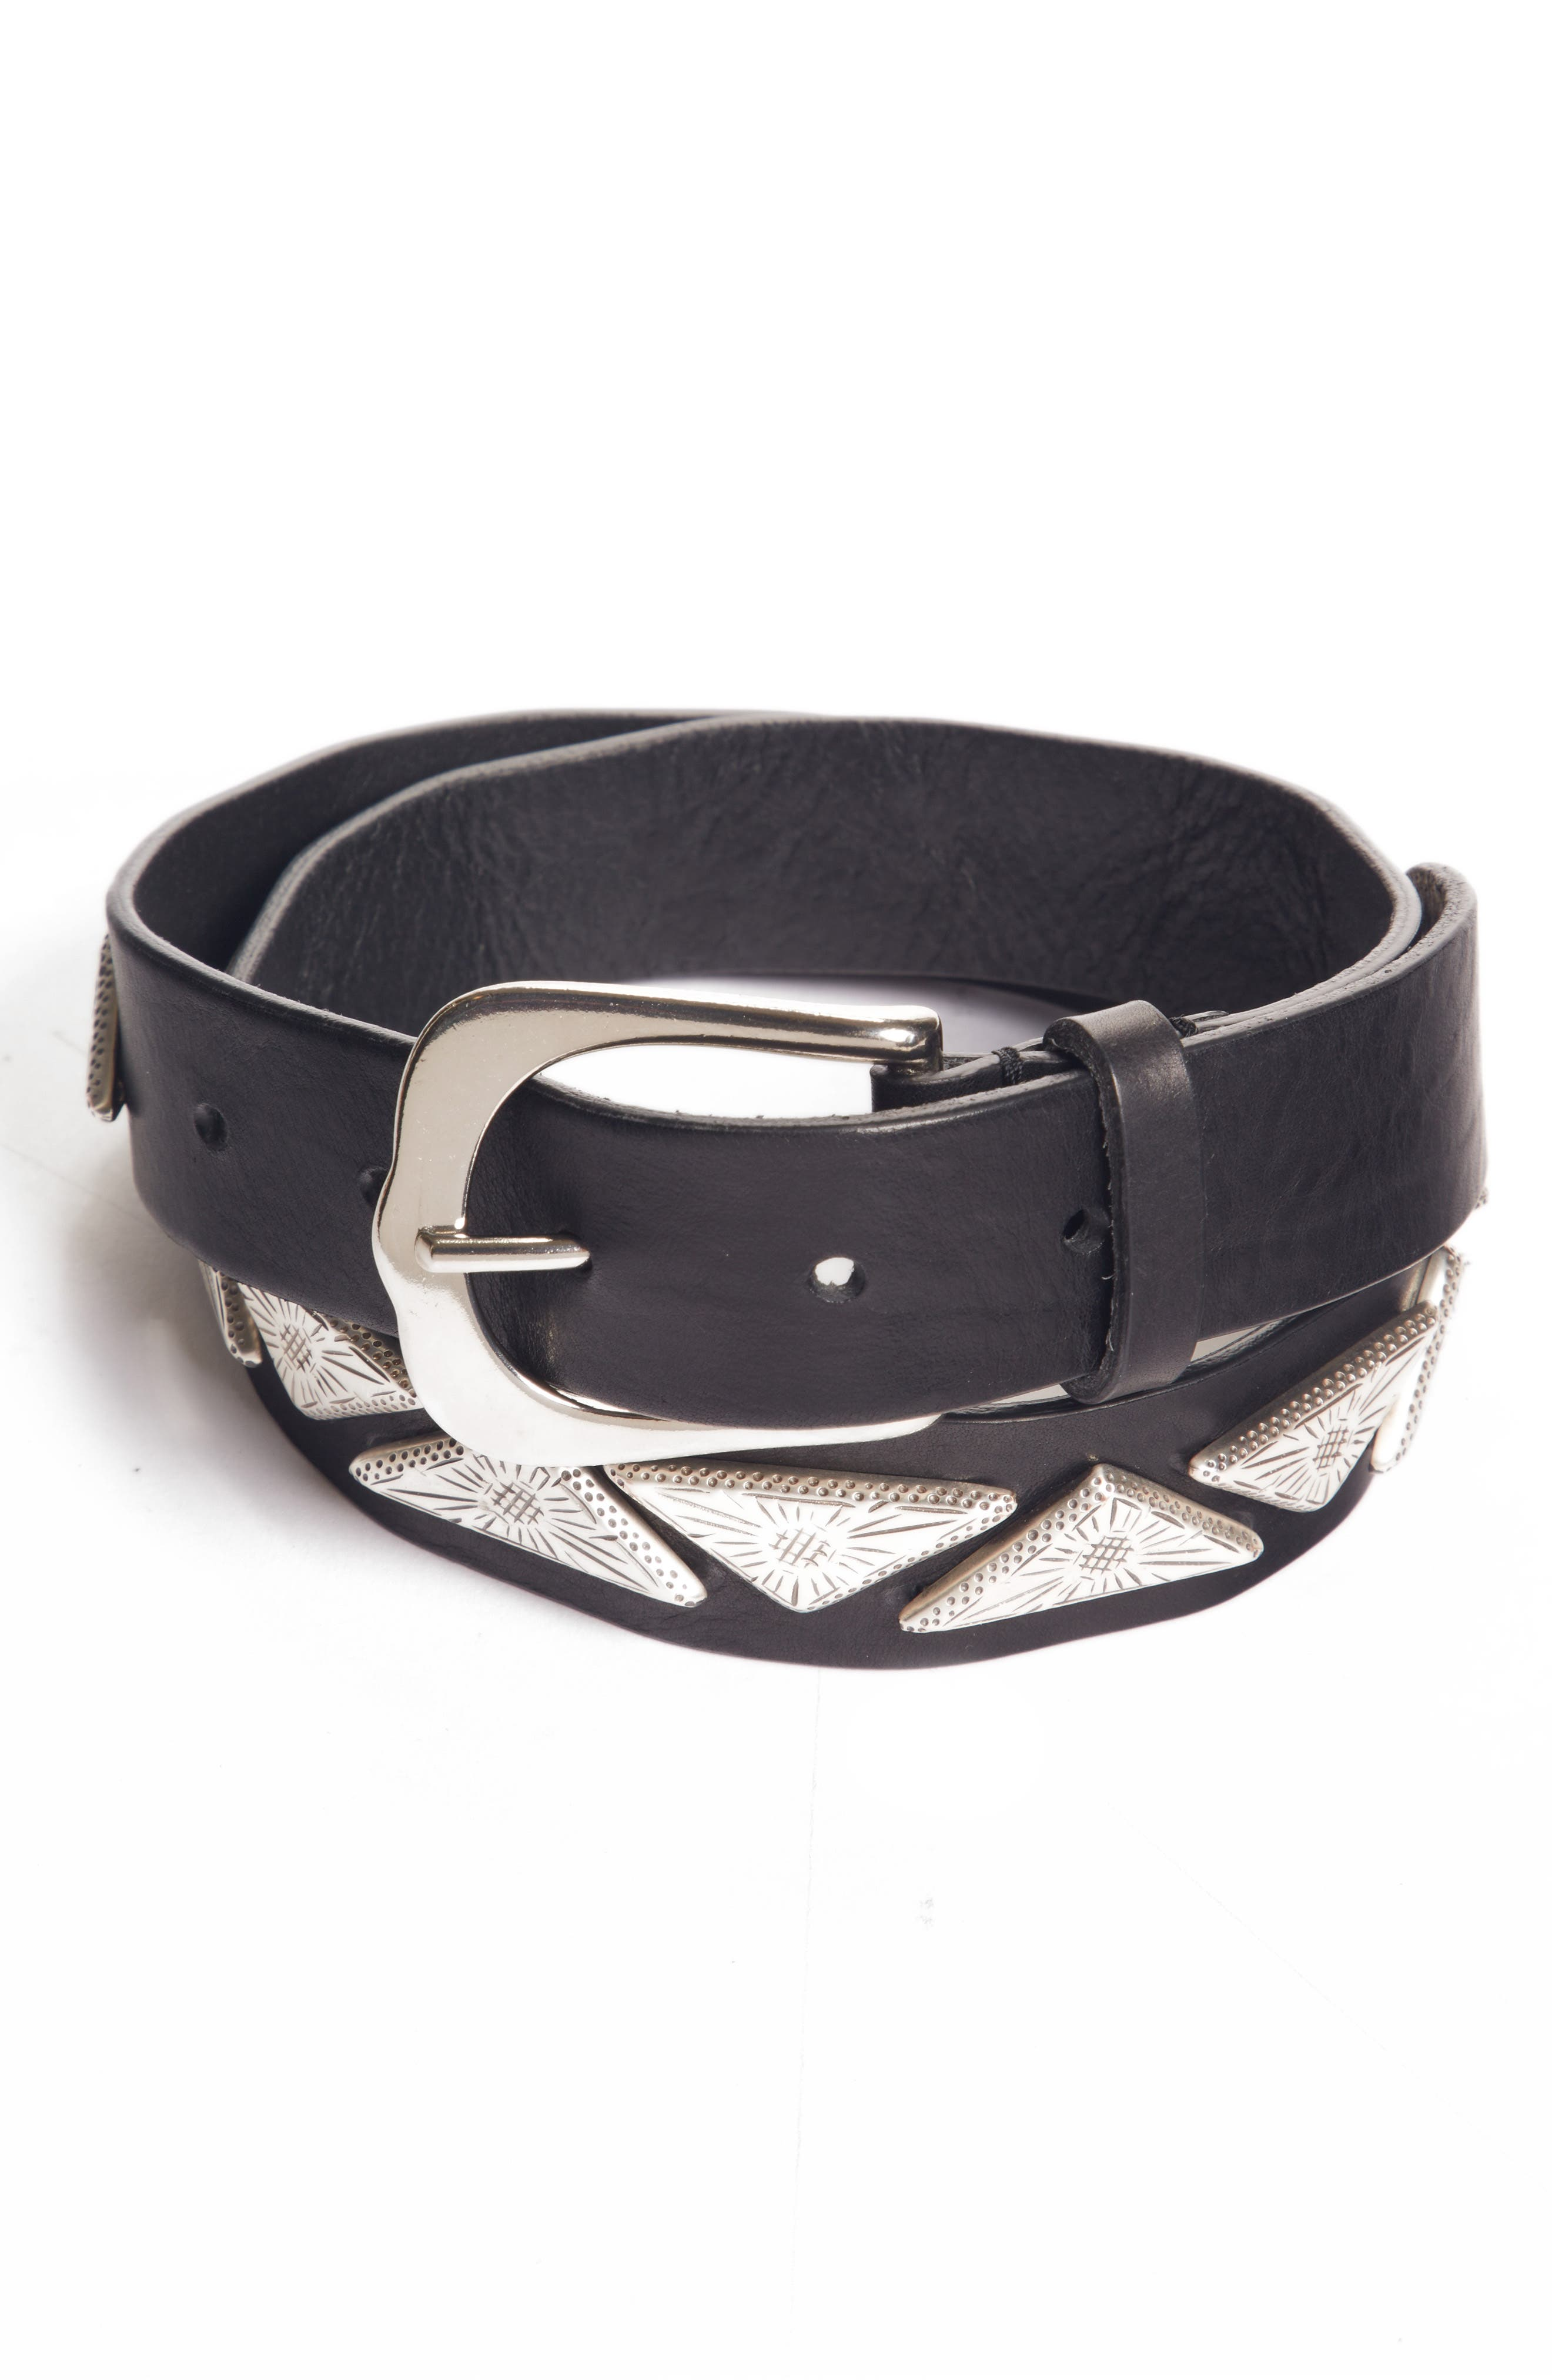 Nyzo Studded Leather Belt,                             Main thumbnail 1, color,                             001